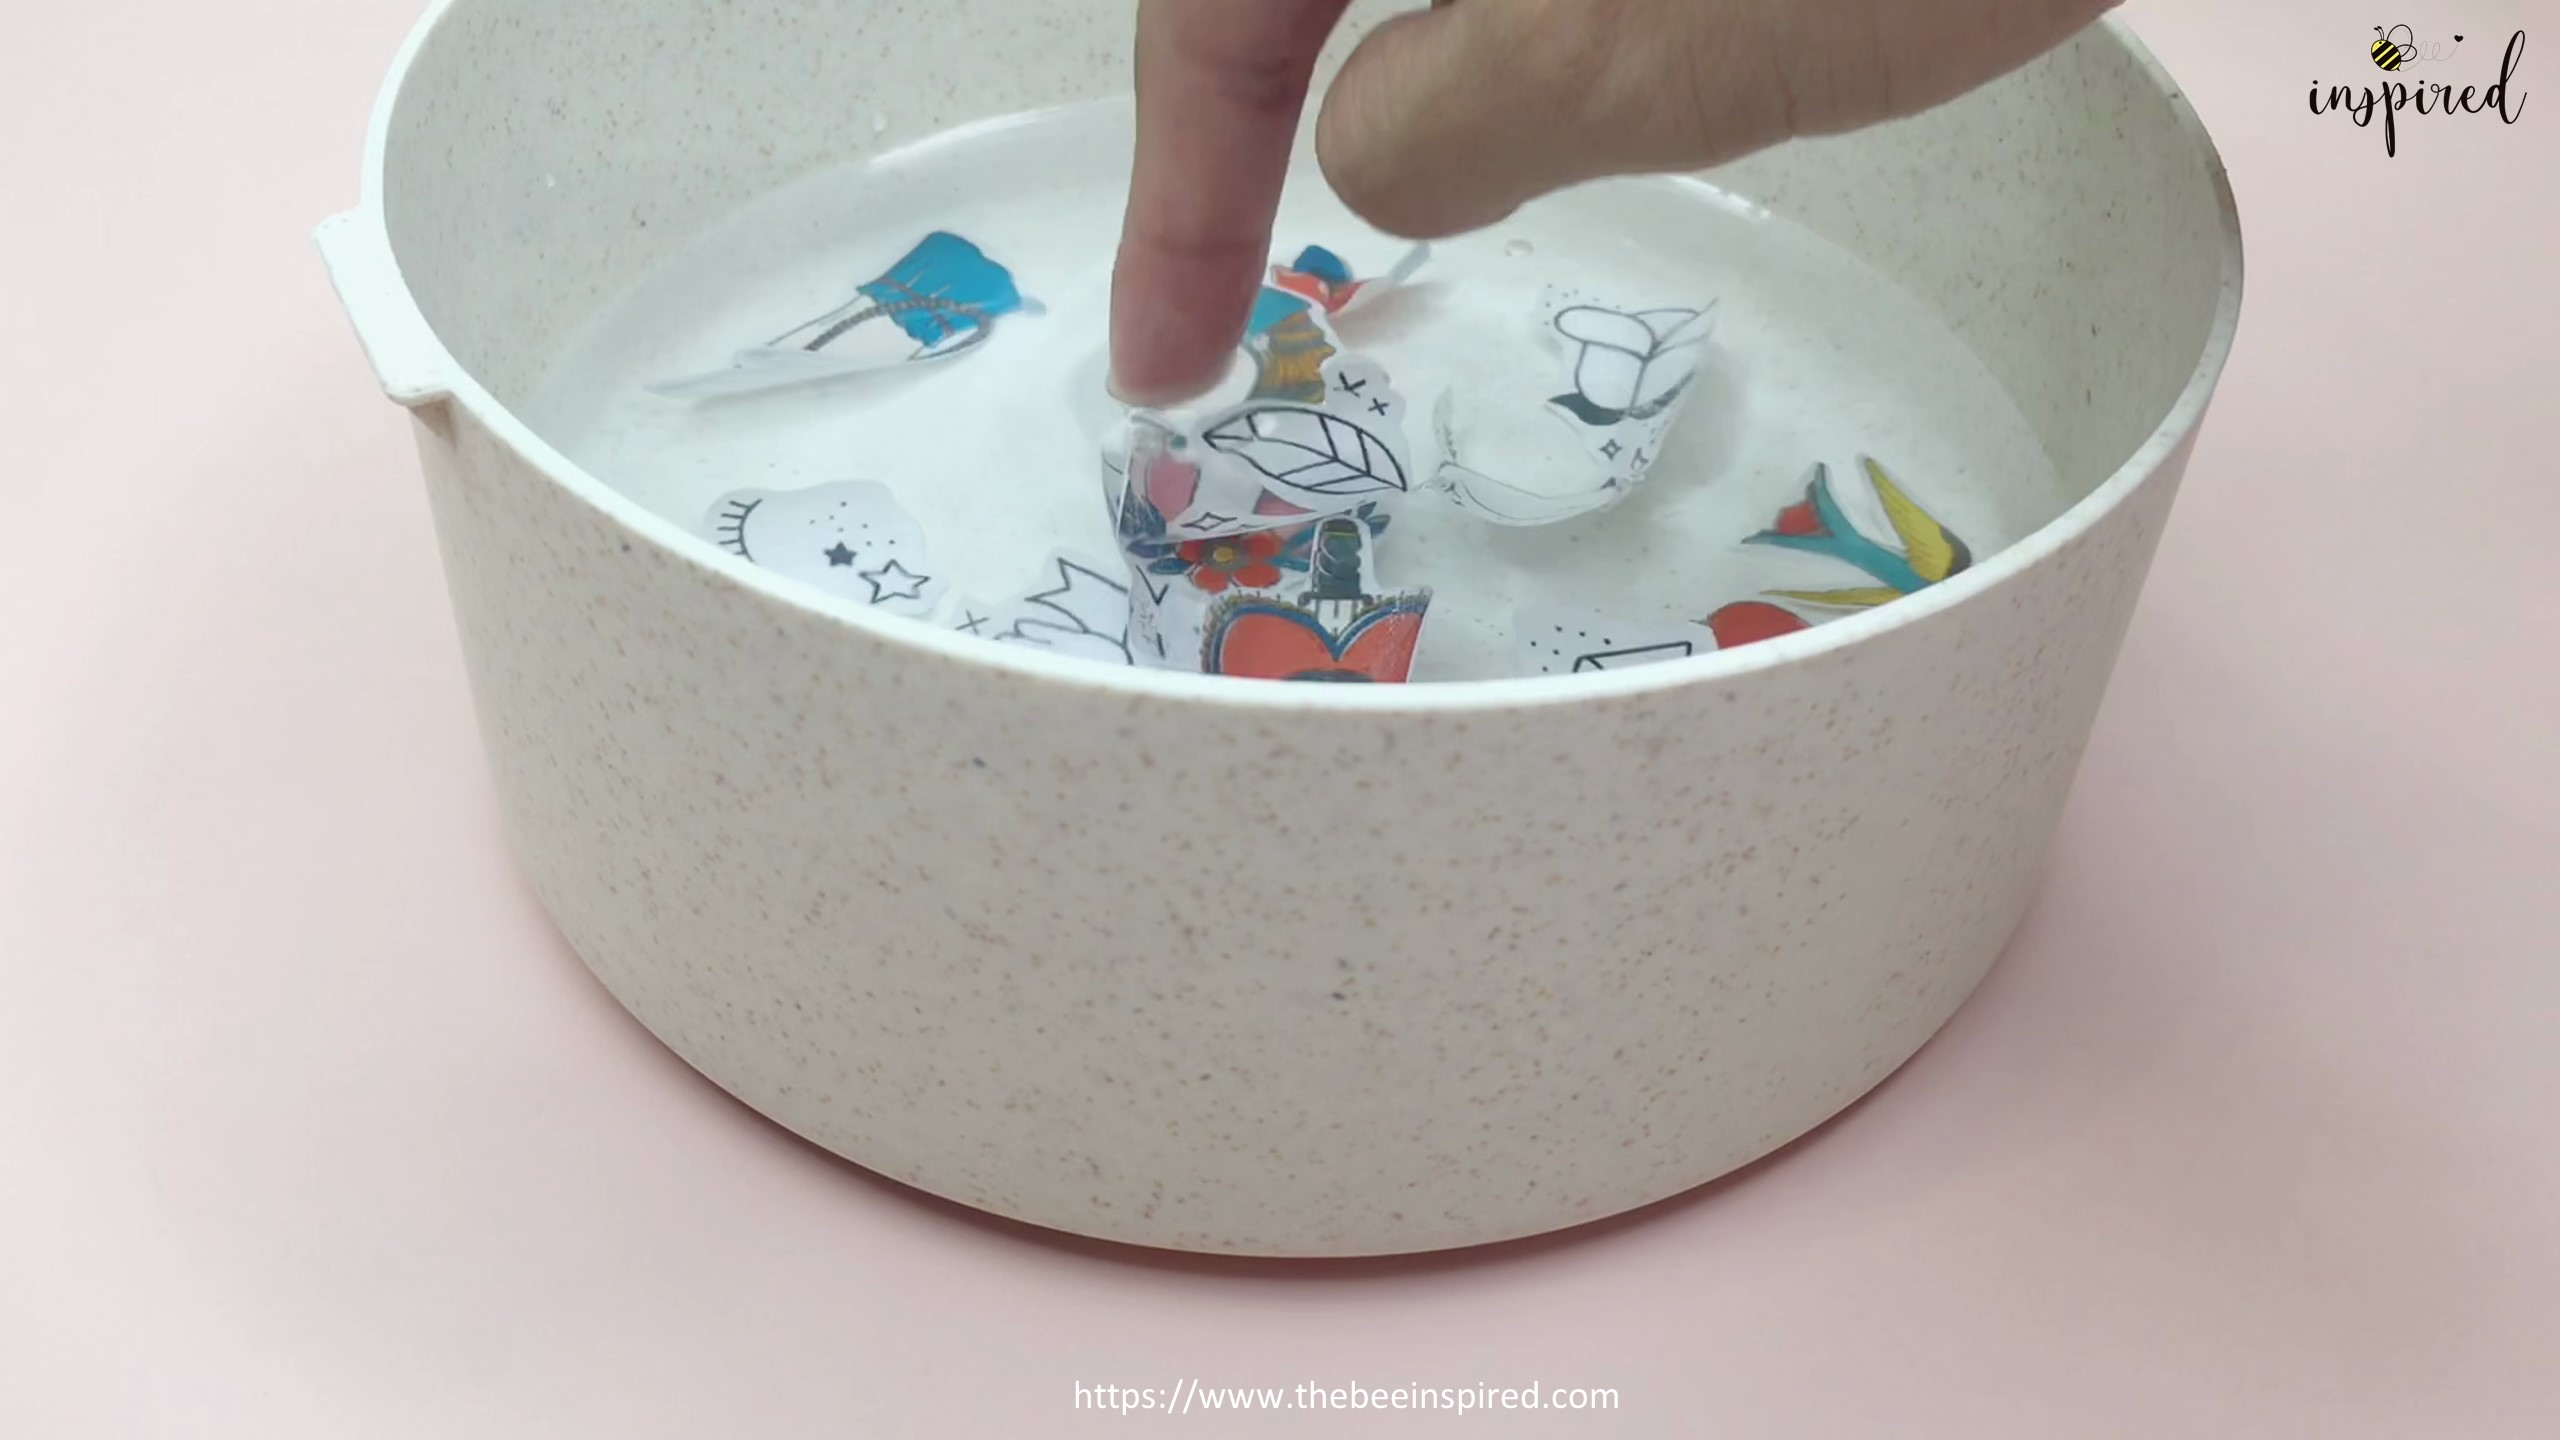 How to Make Sticker from Paper _ Clear Packaging Tape_8